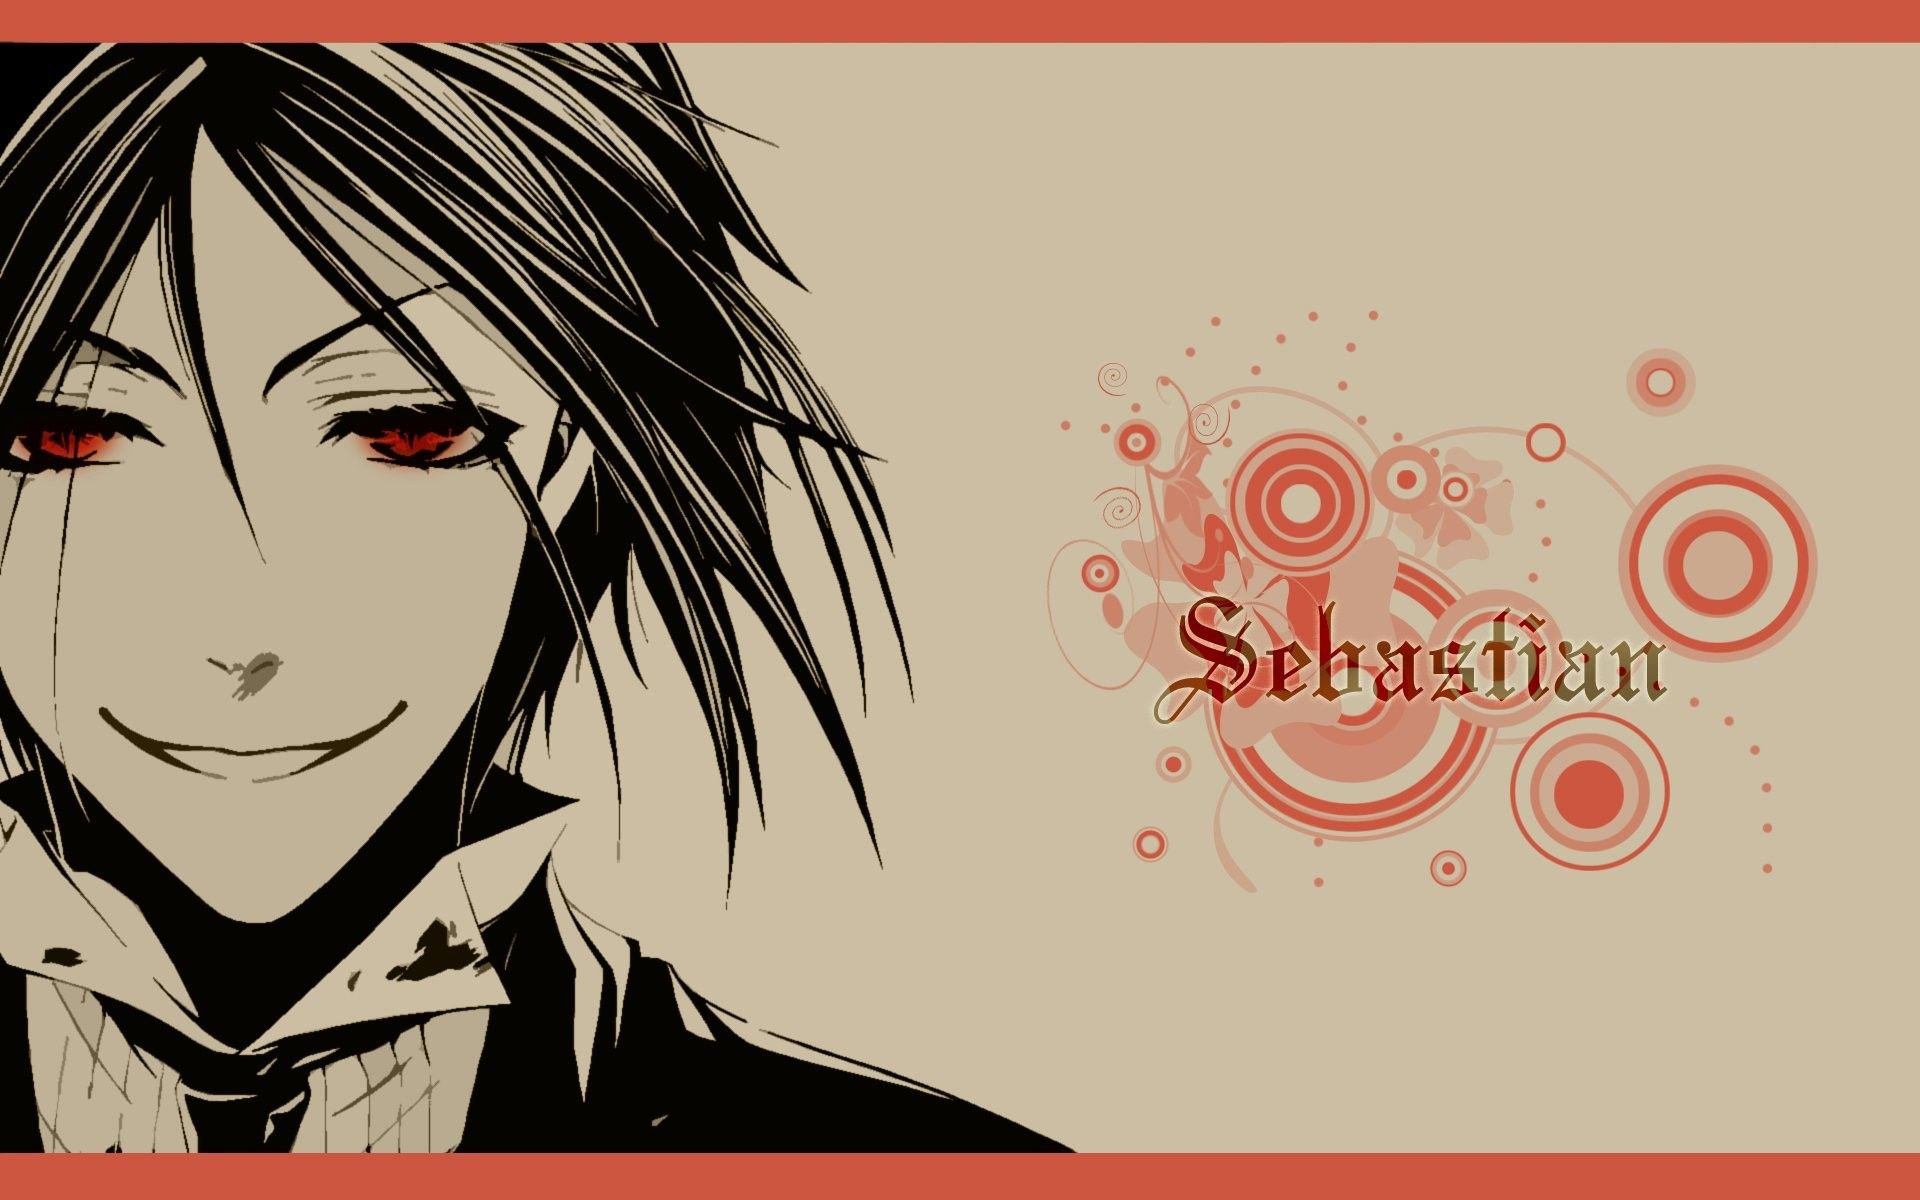 Res: 1920x1200, Suit Kuroshitsuji Sebastian Michaelis red eyes anime anime boys butler  black hair wallpaper |  | 304964 | WallpaperUP